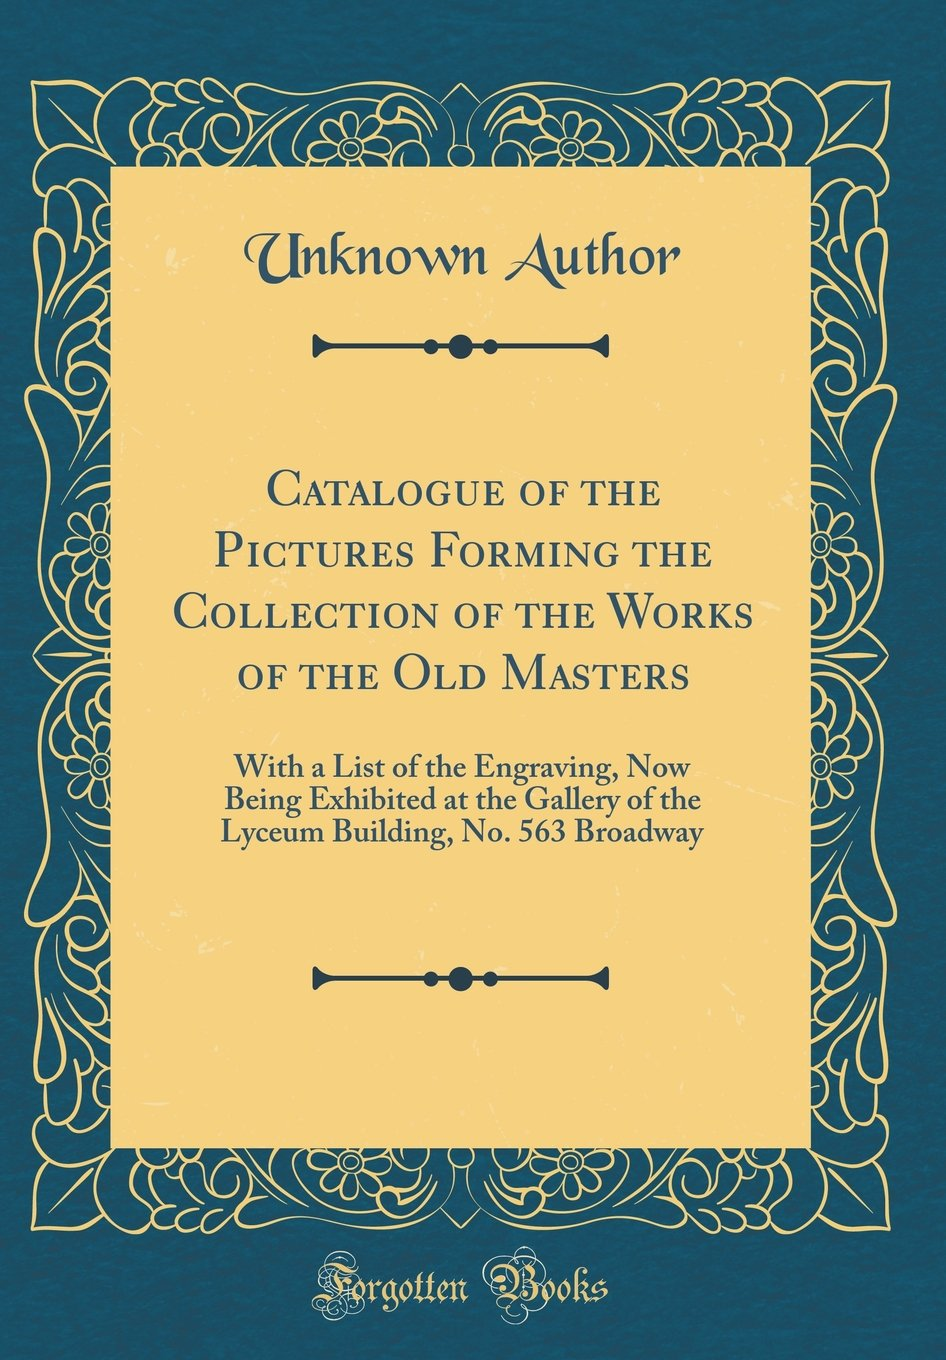 Catalogue of the Pictures Forming the Collection of the Works of the Old Masters: With a List of the Engraving, Now Being Exhibited at the Gallery of ... Building, No. 563 Broadway (Classic Reprint) PDF